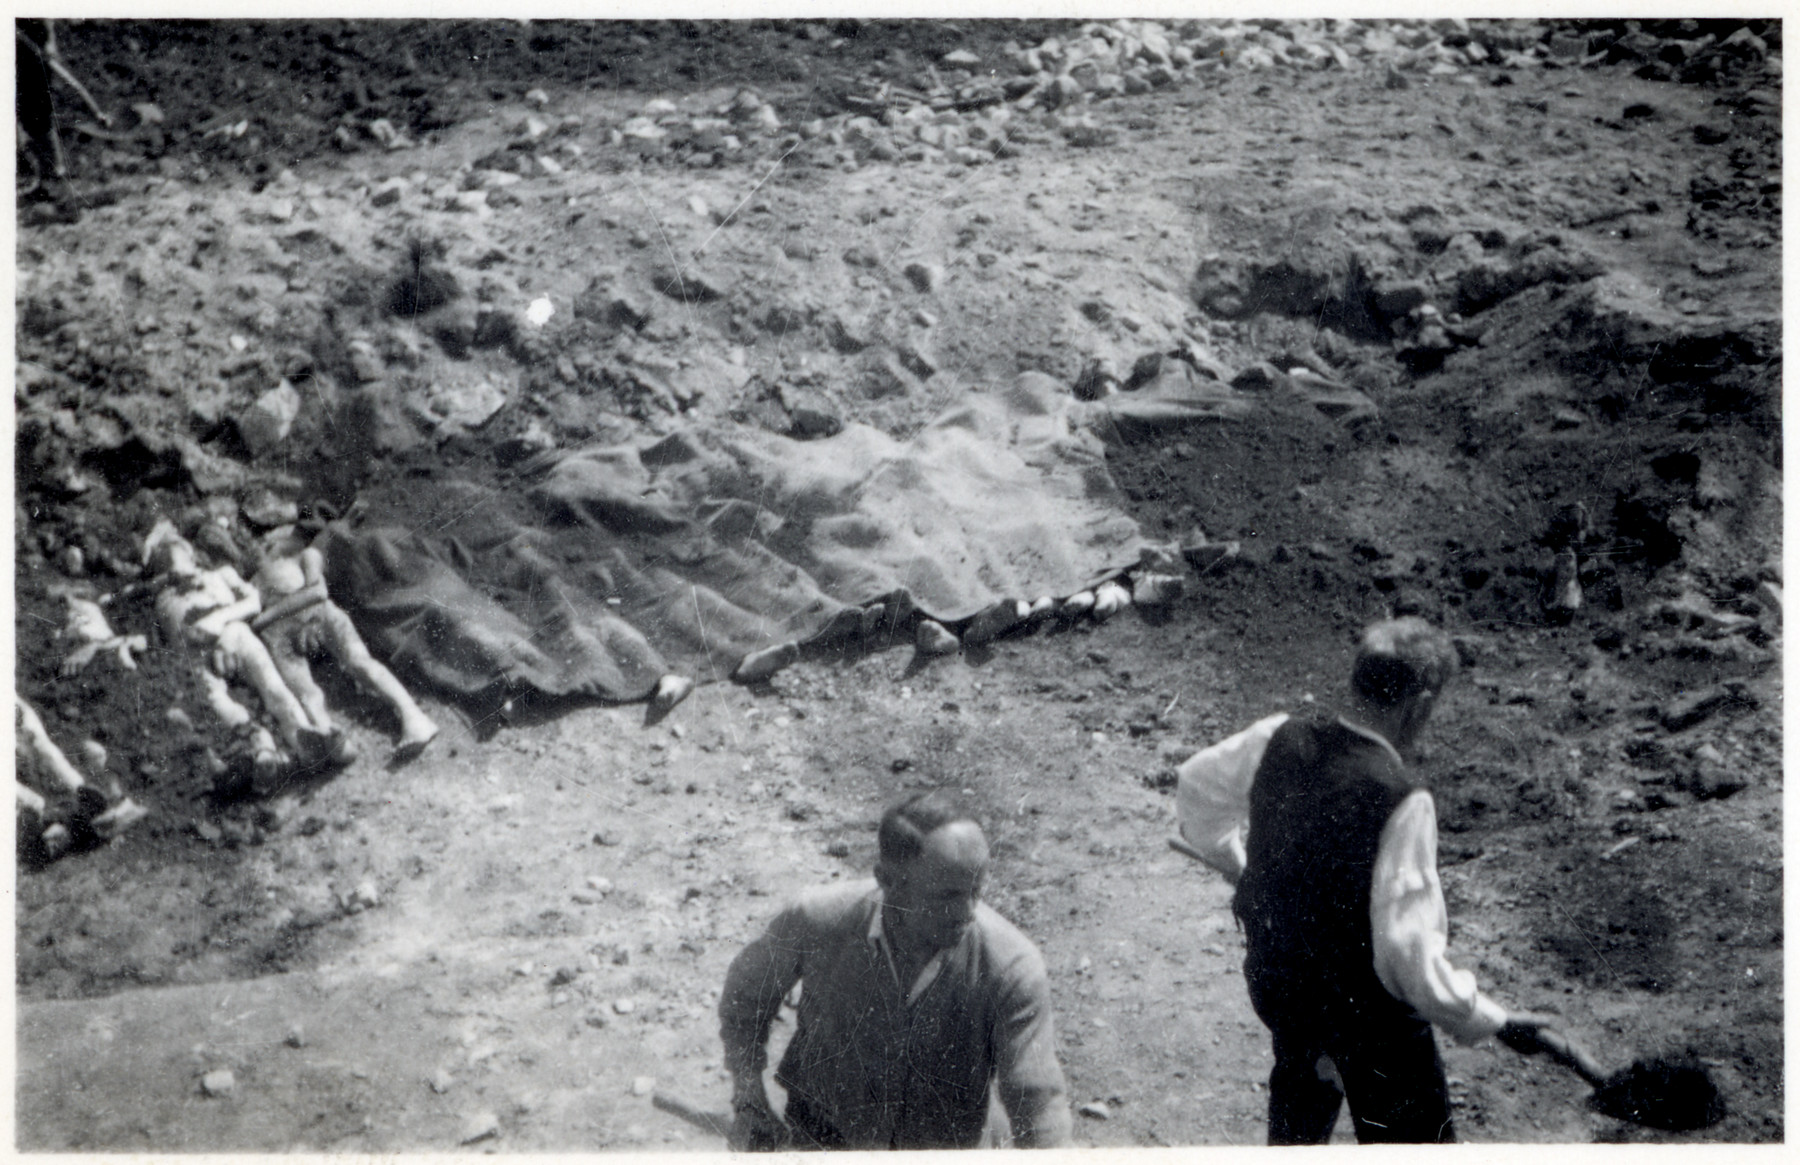 Austrian civilians are forced to bury the corpses of deceased prisoners in the Gusen concentration camp.